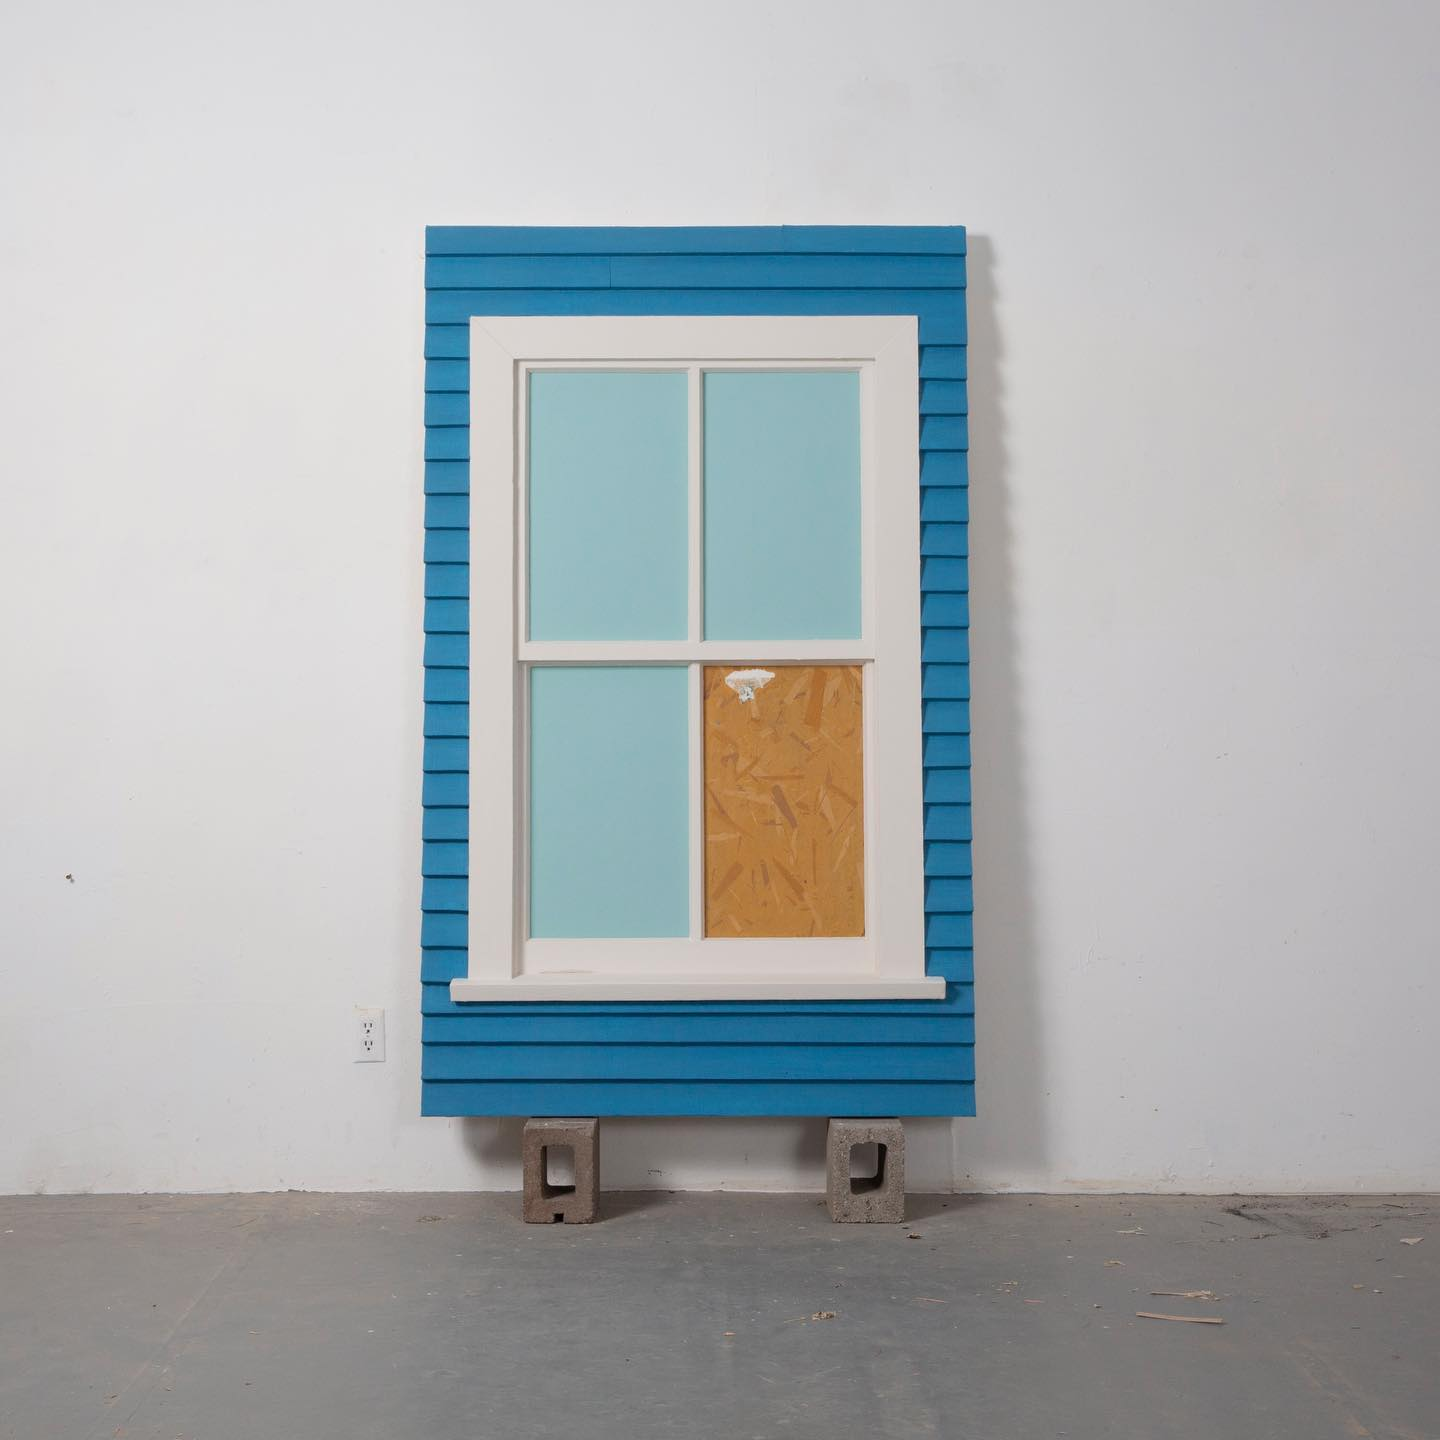 A blue window art Structure